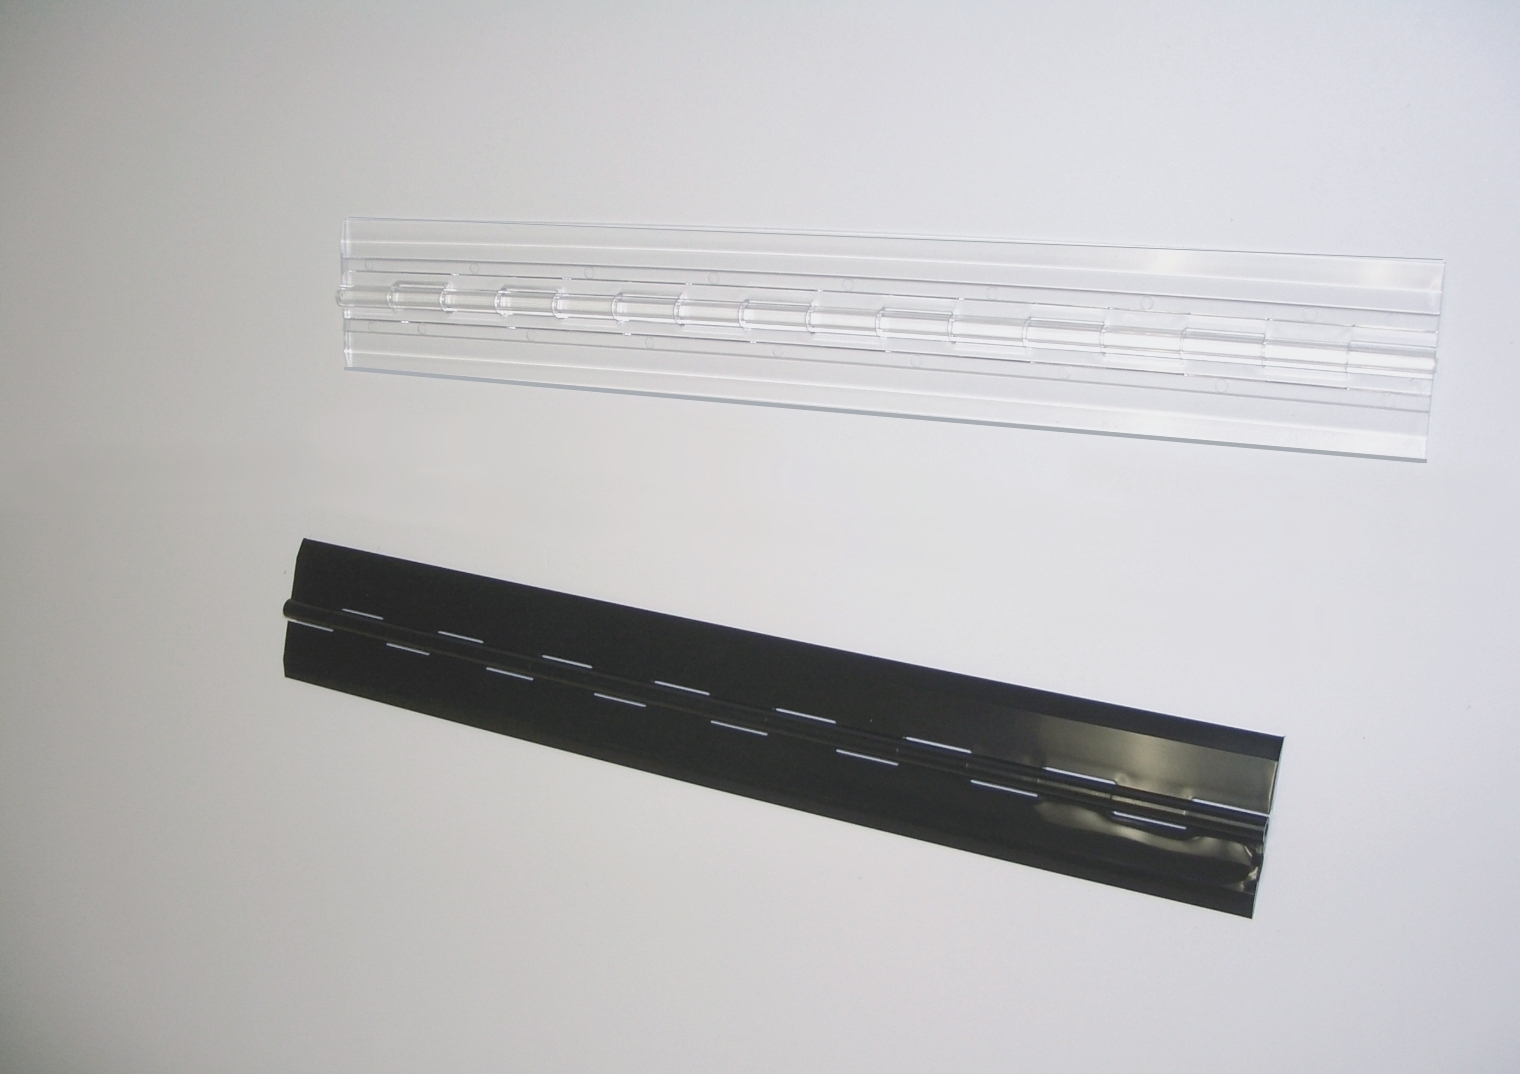 Acrylic hinges clear and black color plastic hinges.